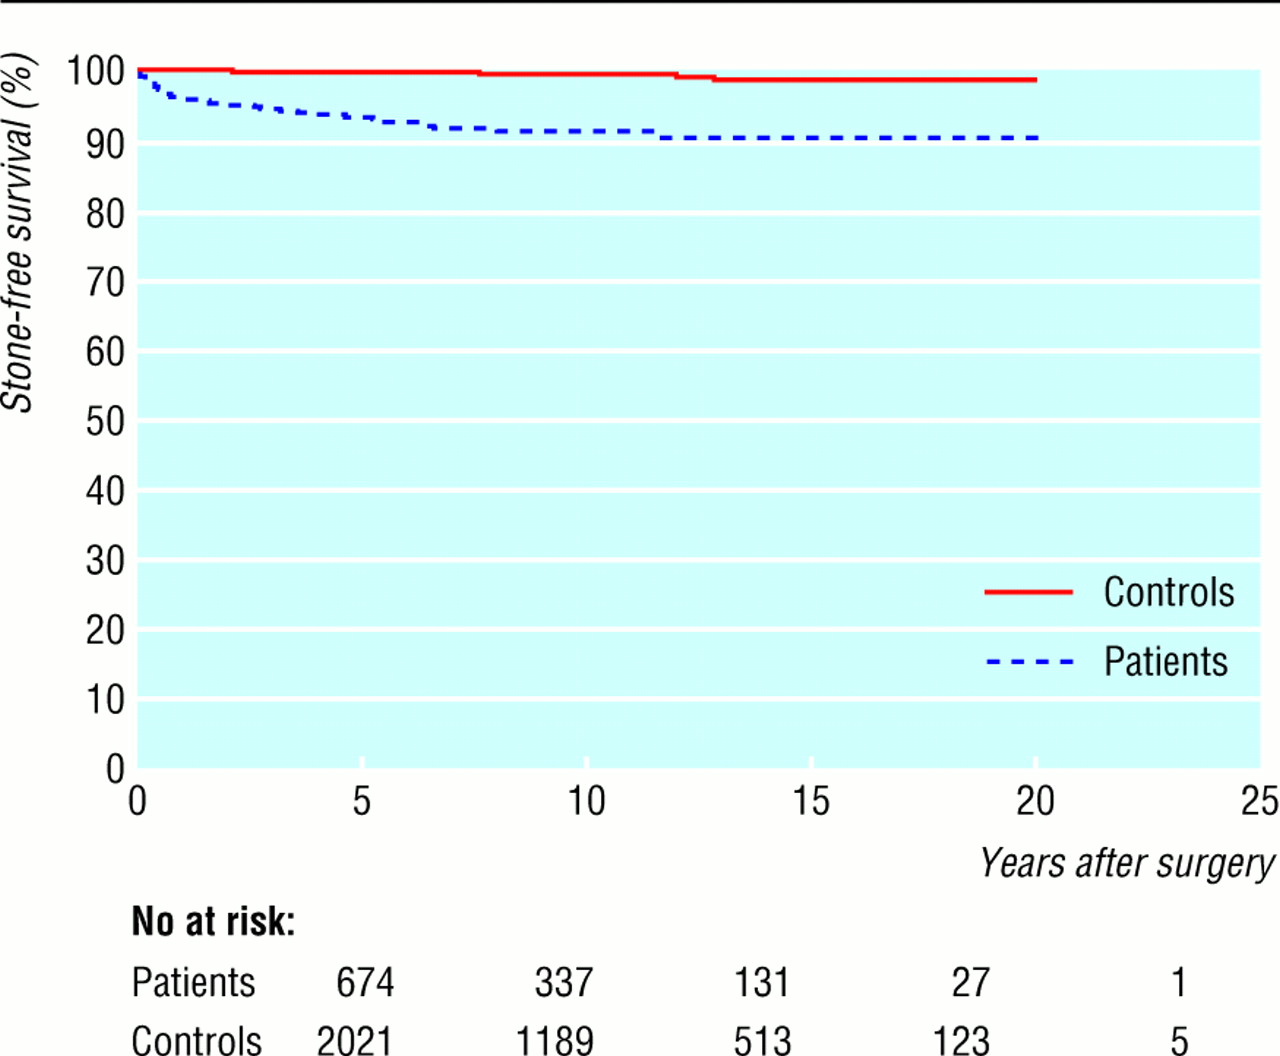 risk of renal stone events in primary hyperparathyroidism before and